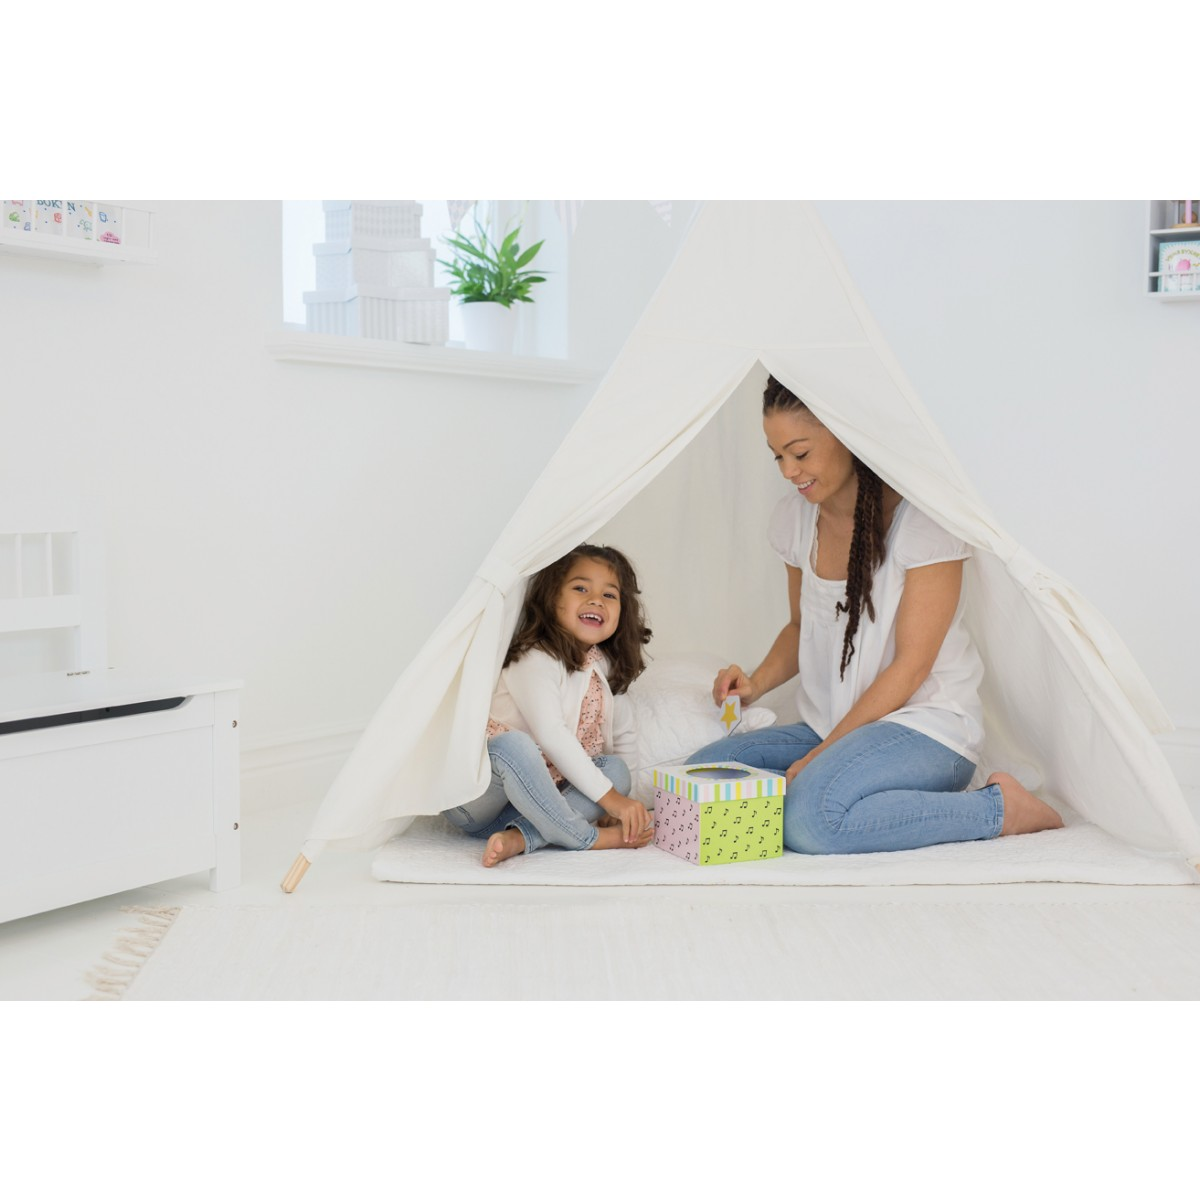 jabadabado tipi zelt f r kinder in natur holzspielzeug profi. Black Bedroom Furniture Sets. Home Design Ideas